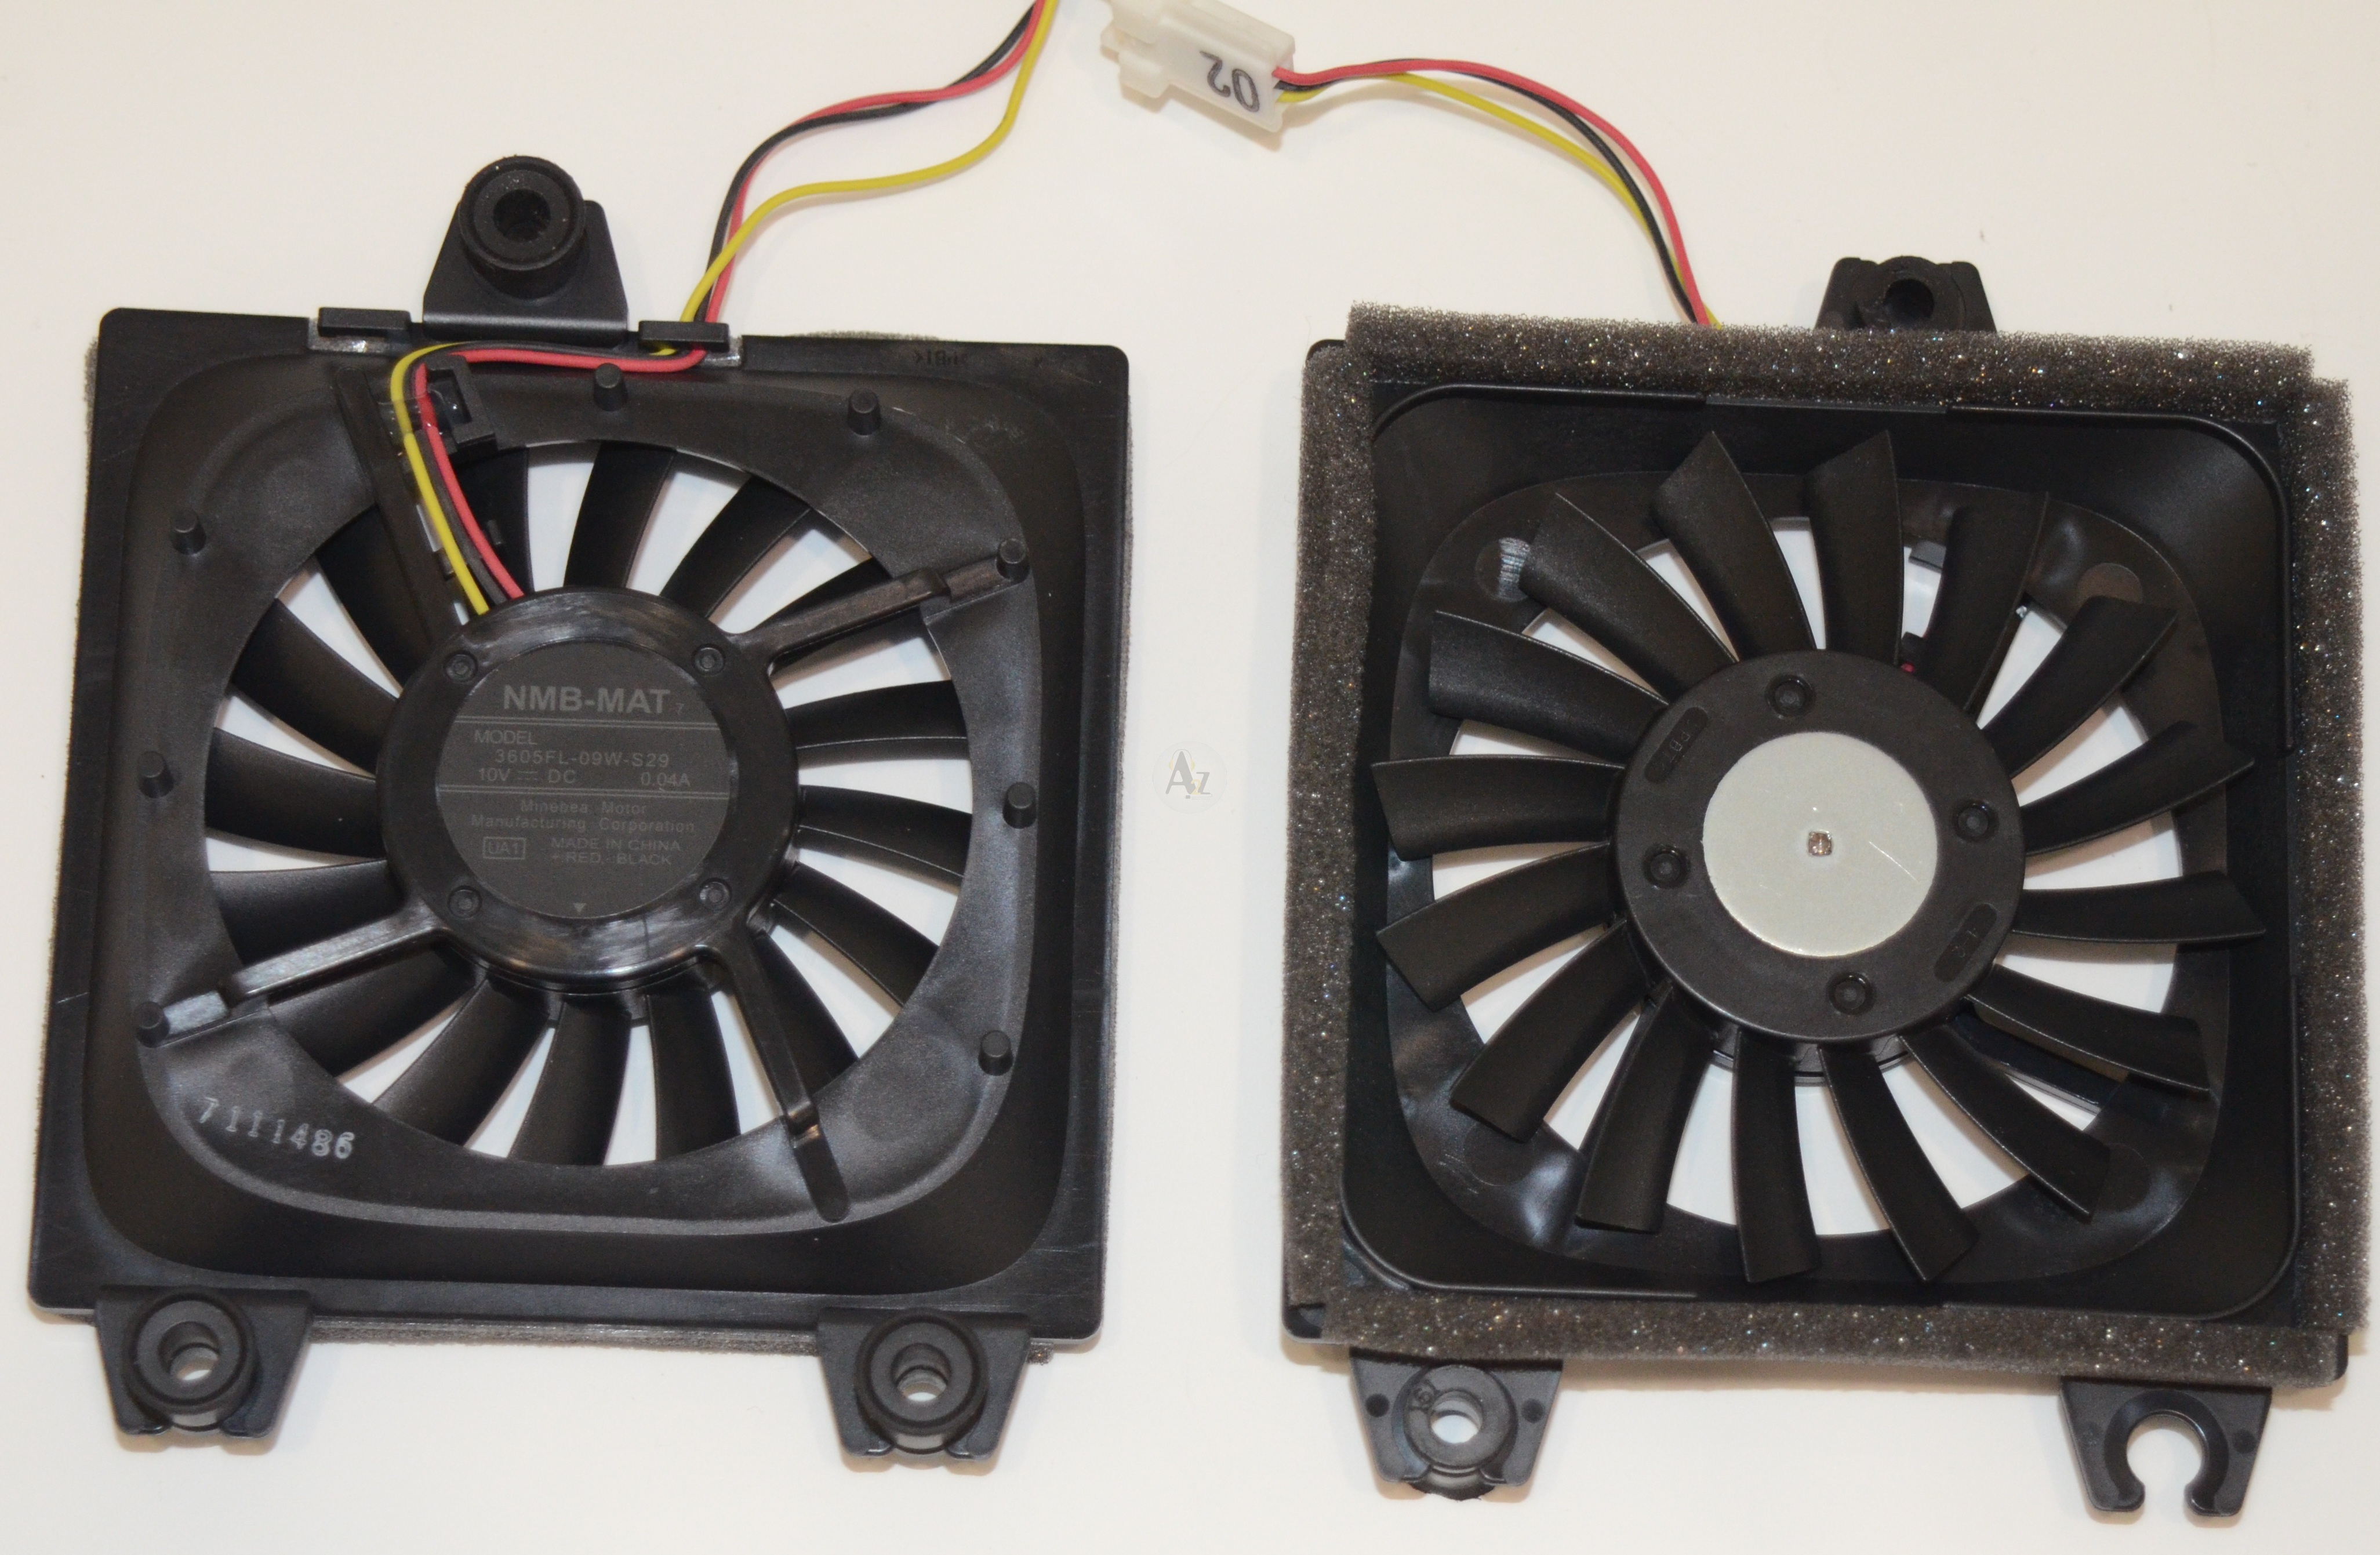 projector a infocus mat lcd pin mats cooling views parts for more three fan nmb